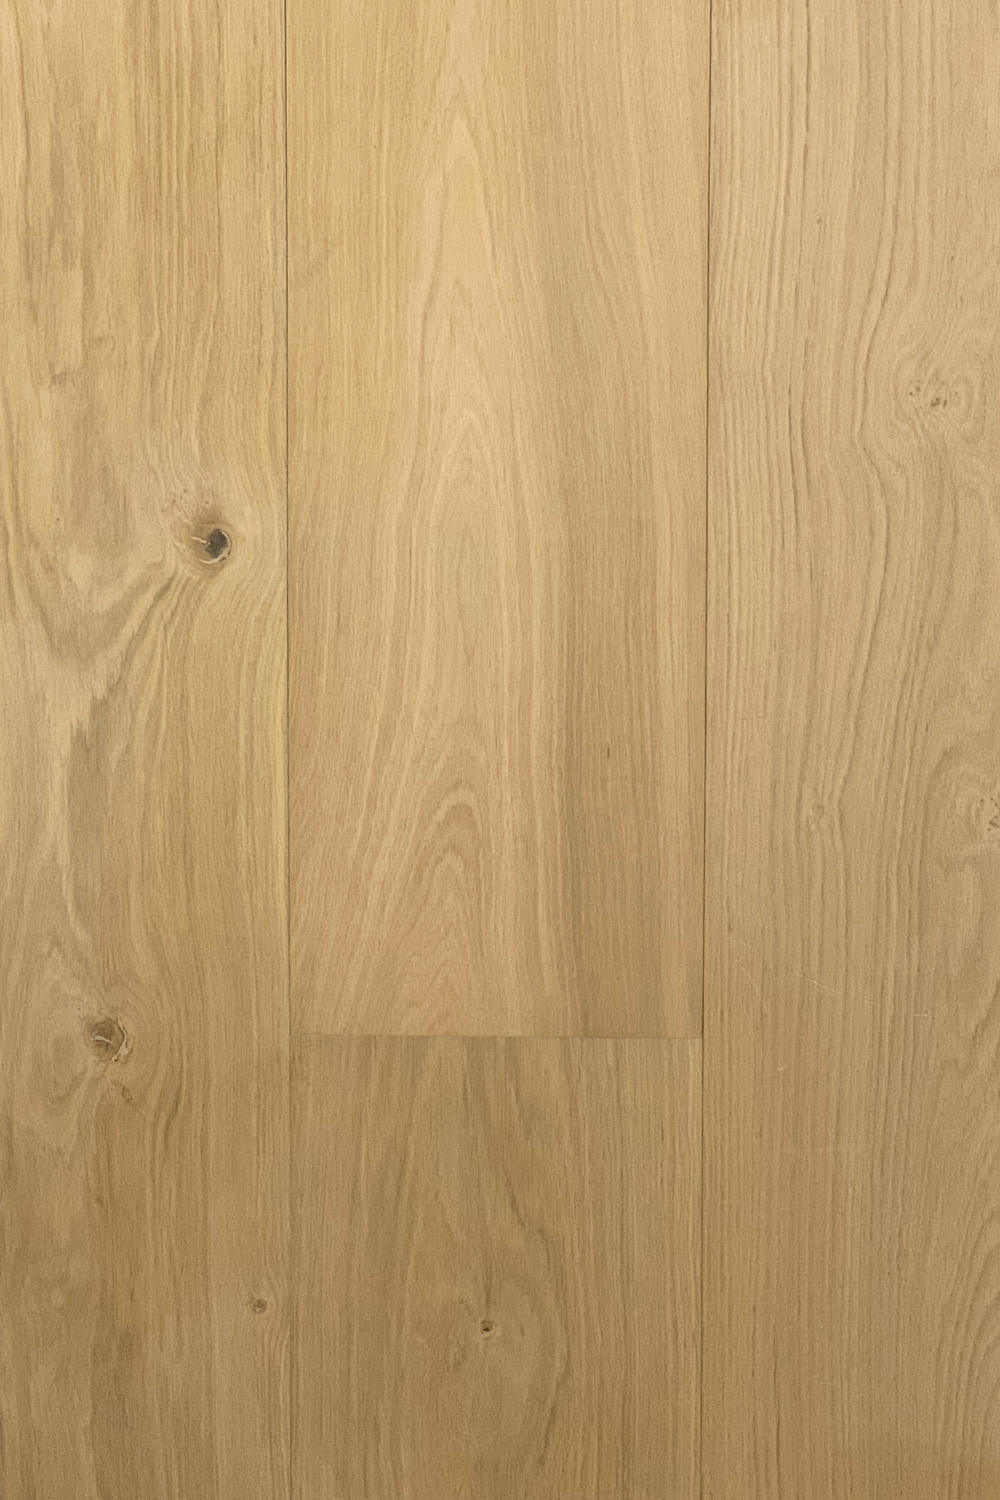 Unfinished10.25 5/8 in. Thick x 10-1/4 in. Wide x Varying Length Floating Engineered European Oak Hardwood Flooring (22.73 sq. ft. / box) - 810001960490